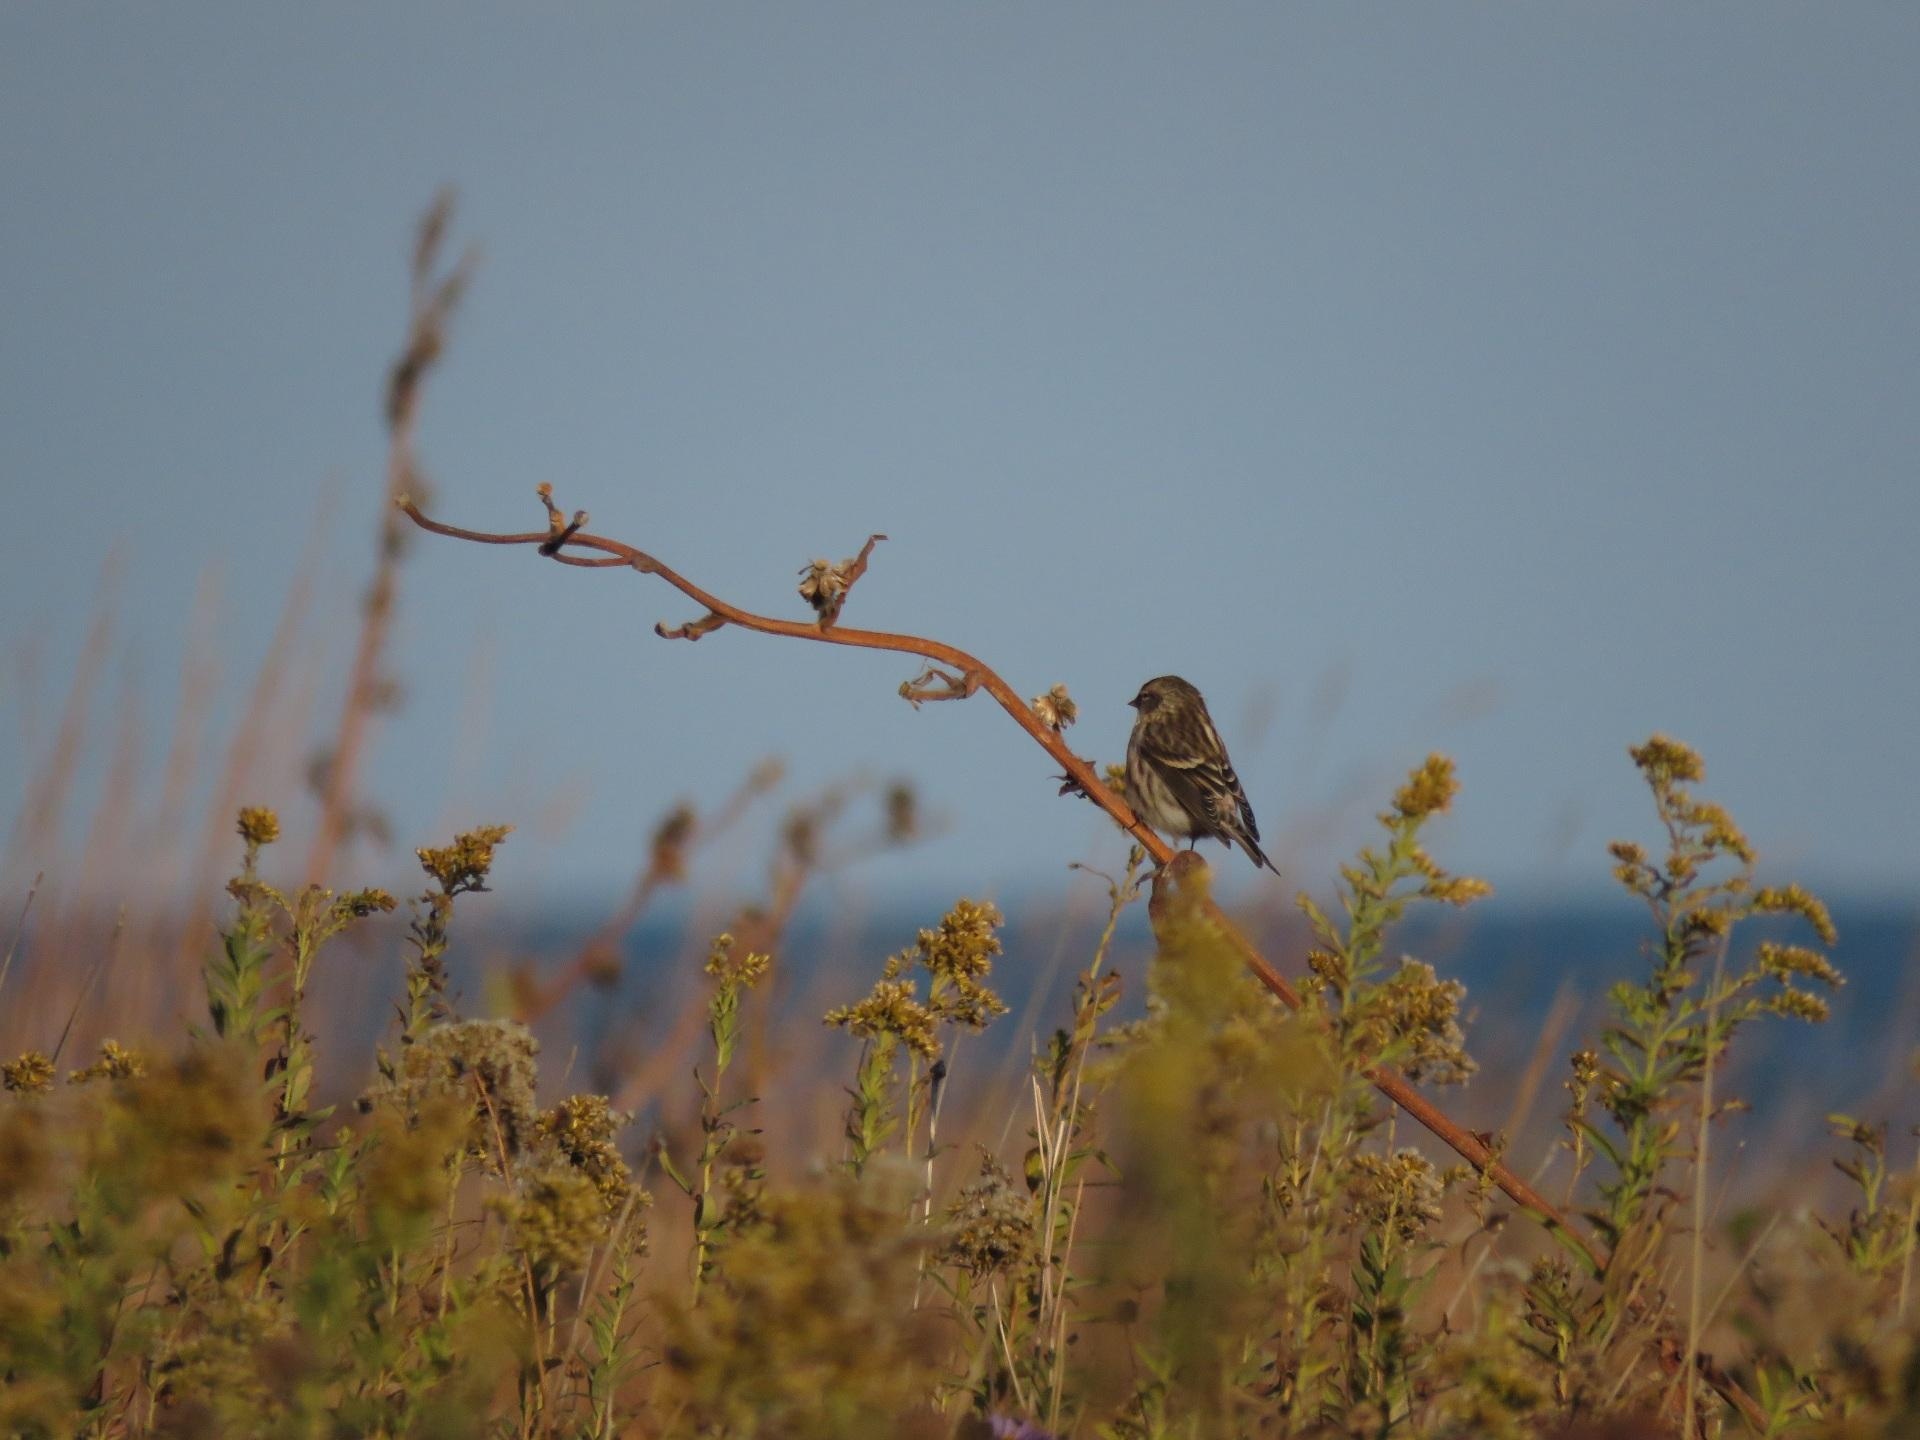 Pictured is a common redpoll, which is the 282nd bird species Isoo O'Brien spotted this year. (Credit: Isoo O'Brien)